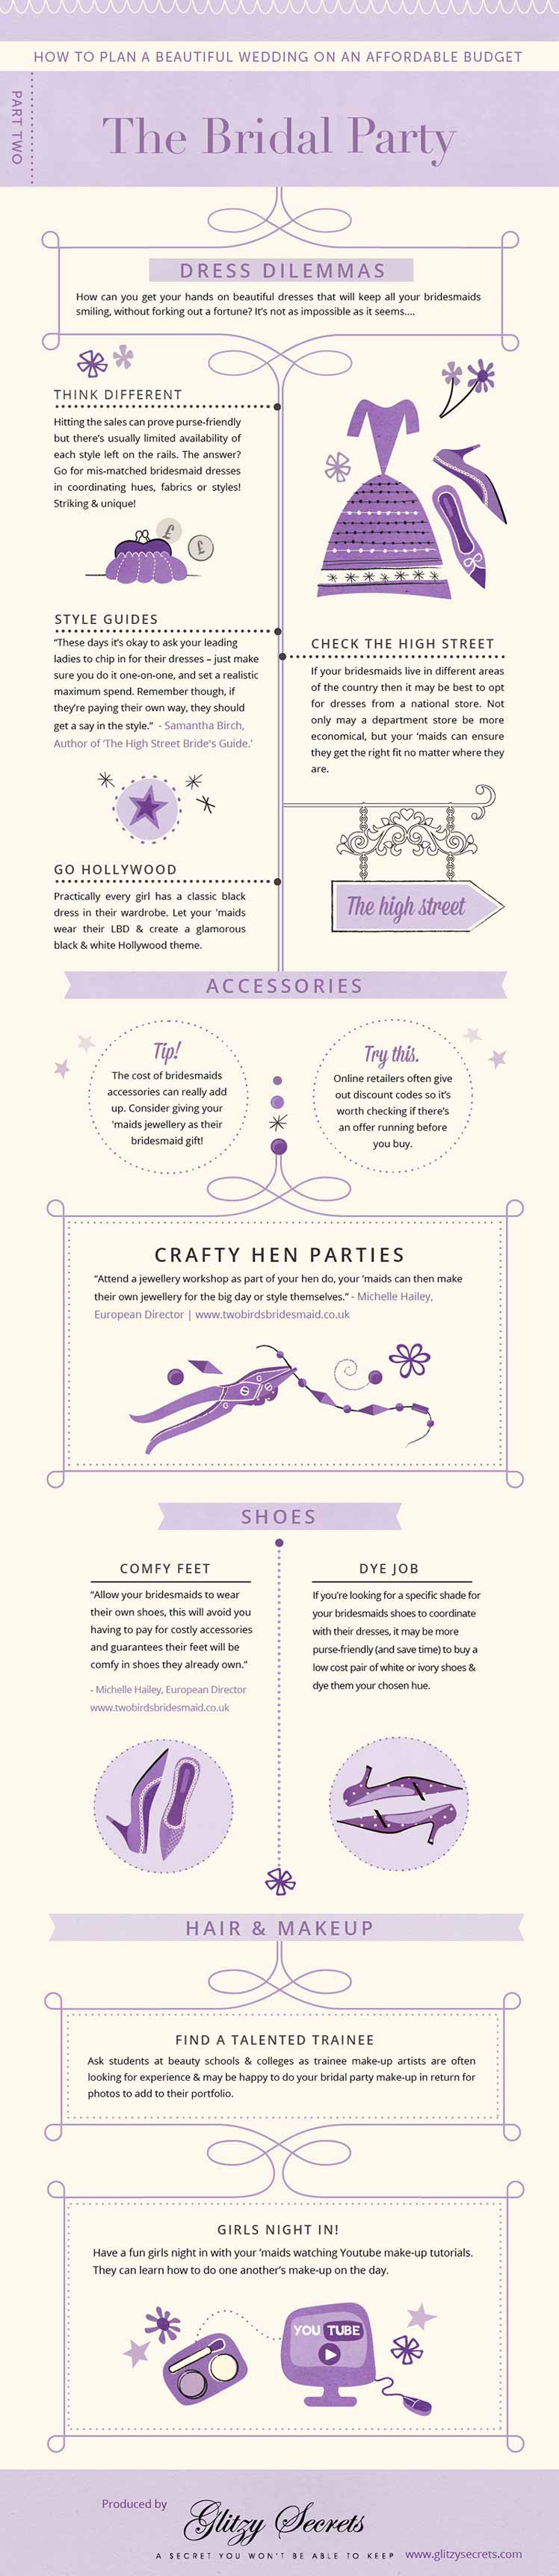 Wedding infographic for bridesmaid tips